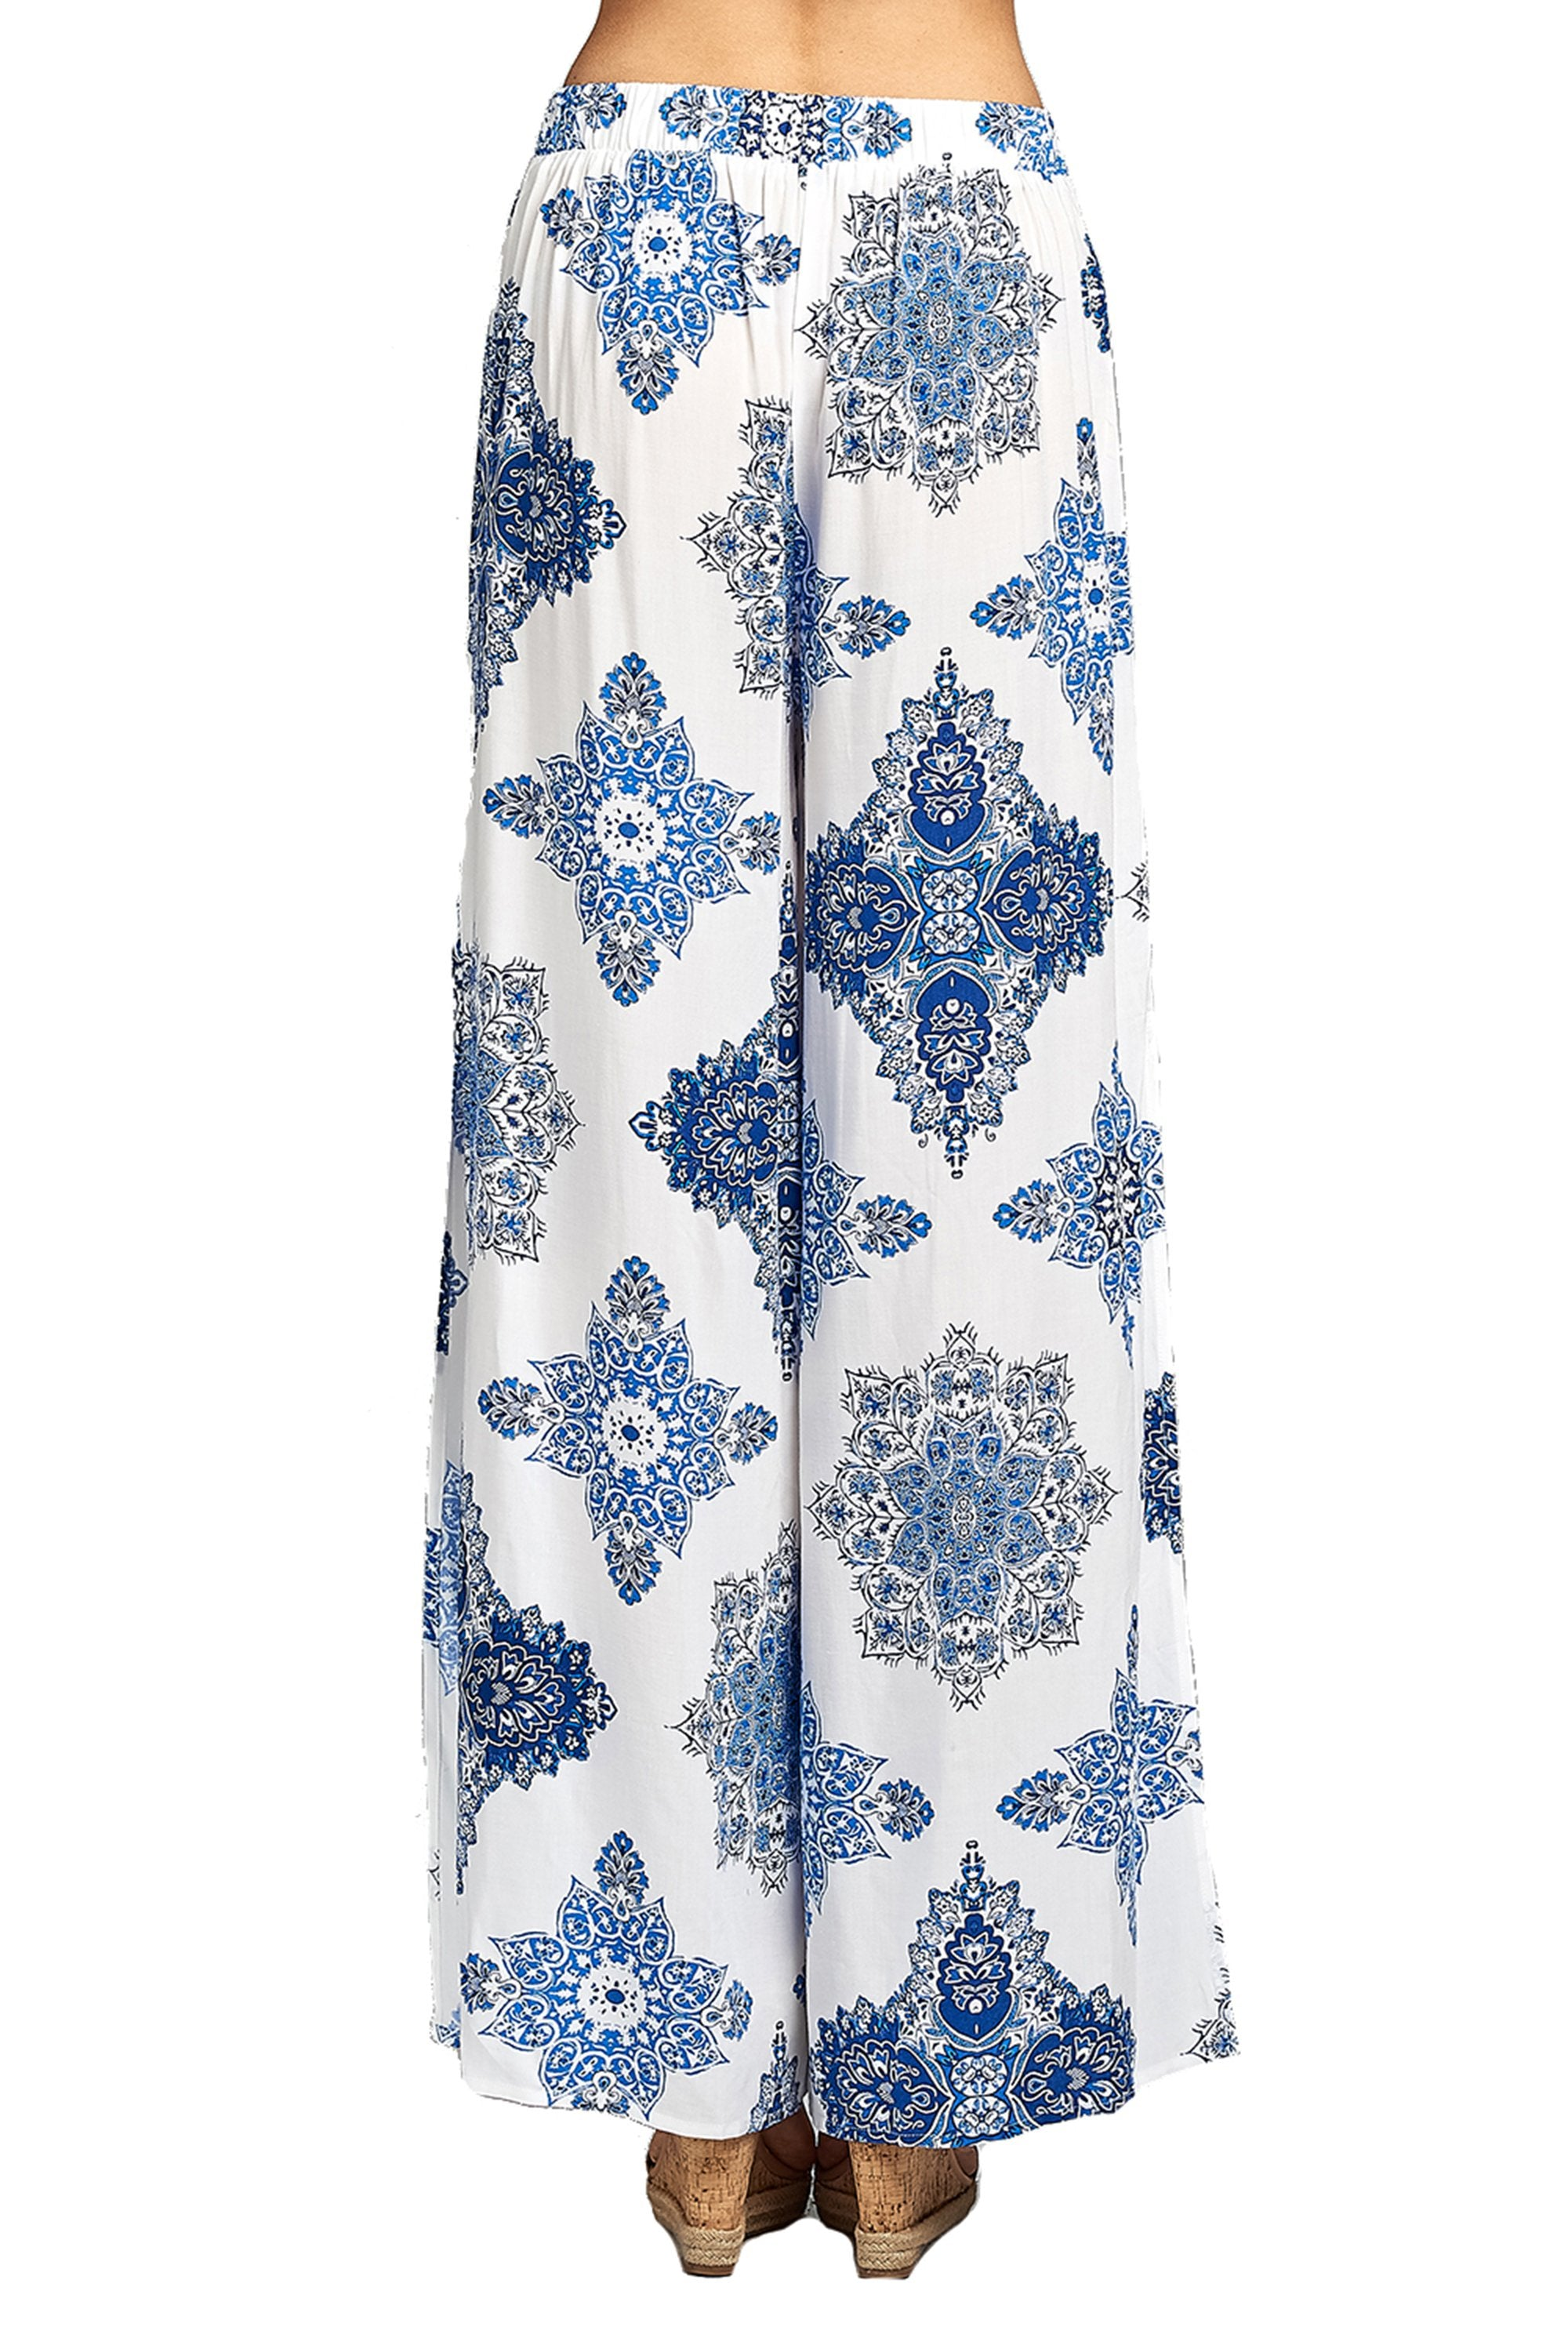 High Waist Allover Floral Print Flowy Maxi Slit Side Long Palazzo Pants